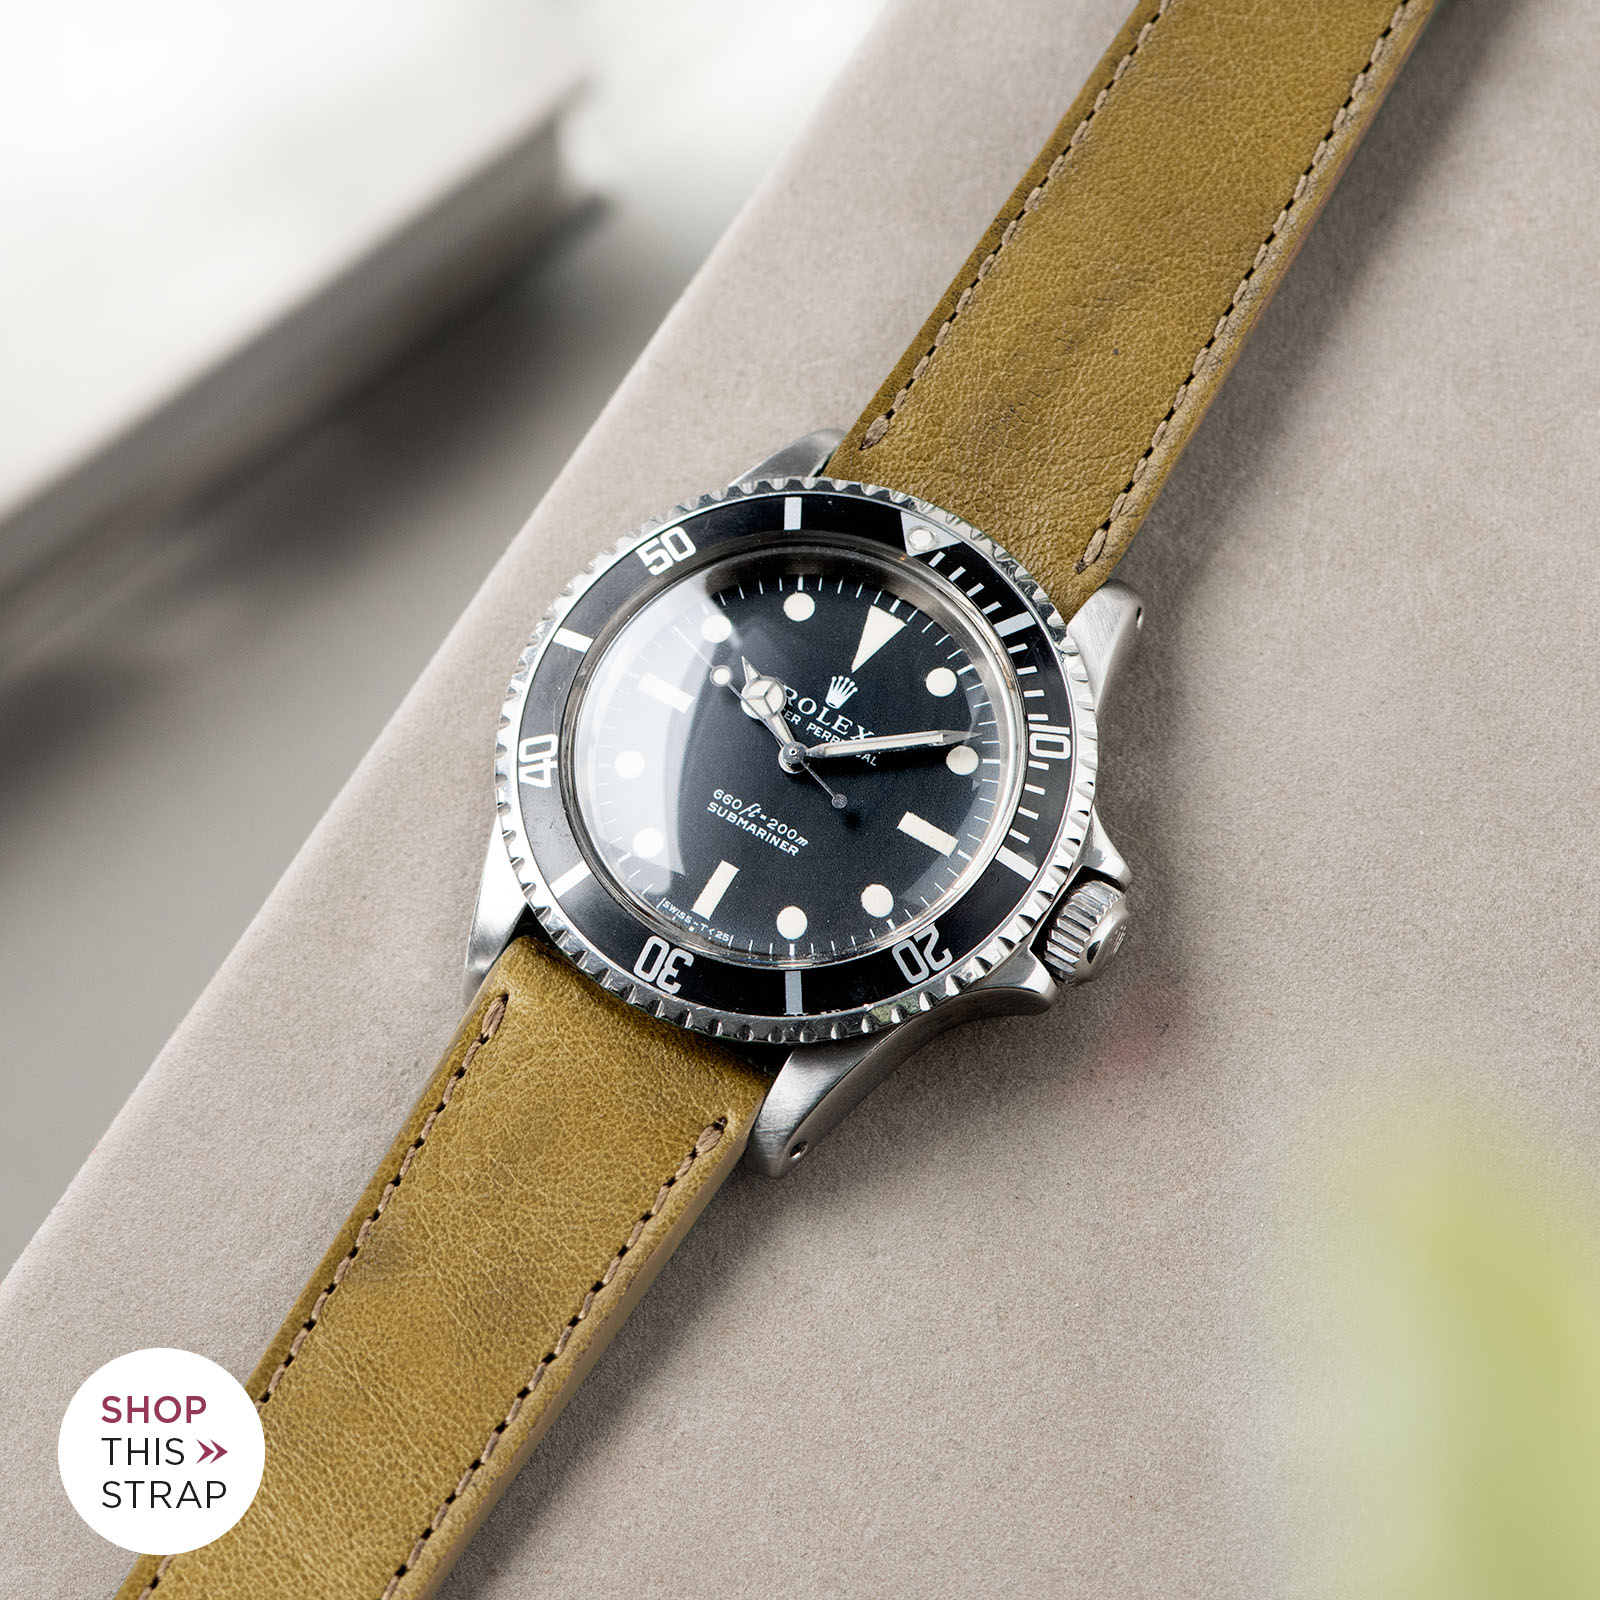 Bulang and Sons_Strap Guide_Rolex Submariner 5513 Black_Light Olive Leather Watch Strap_B